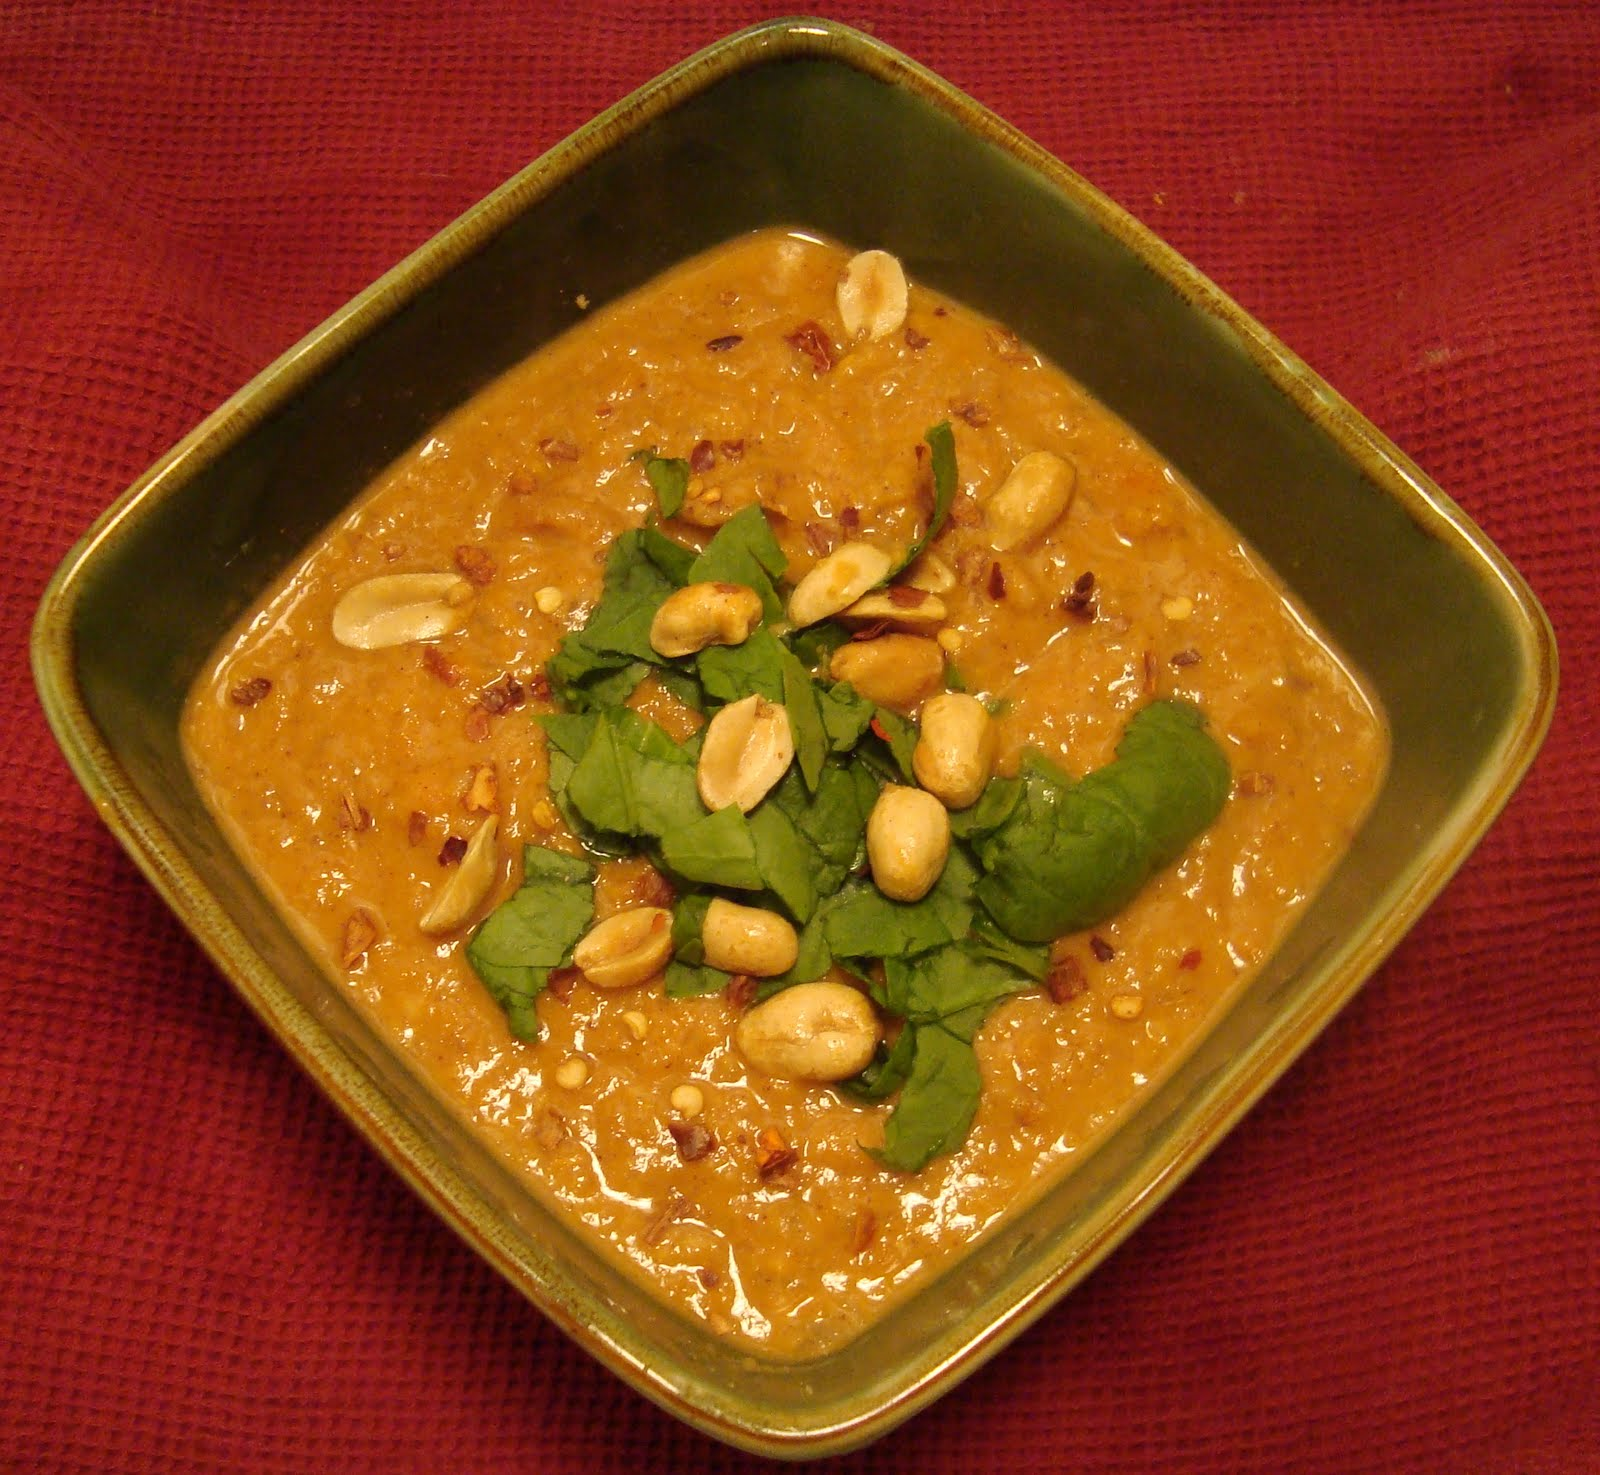 Crock Pot Peanut Butter Soup